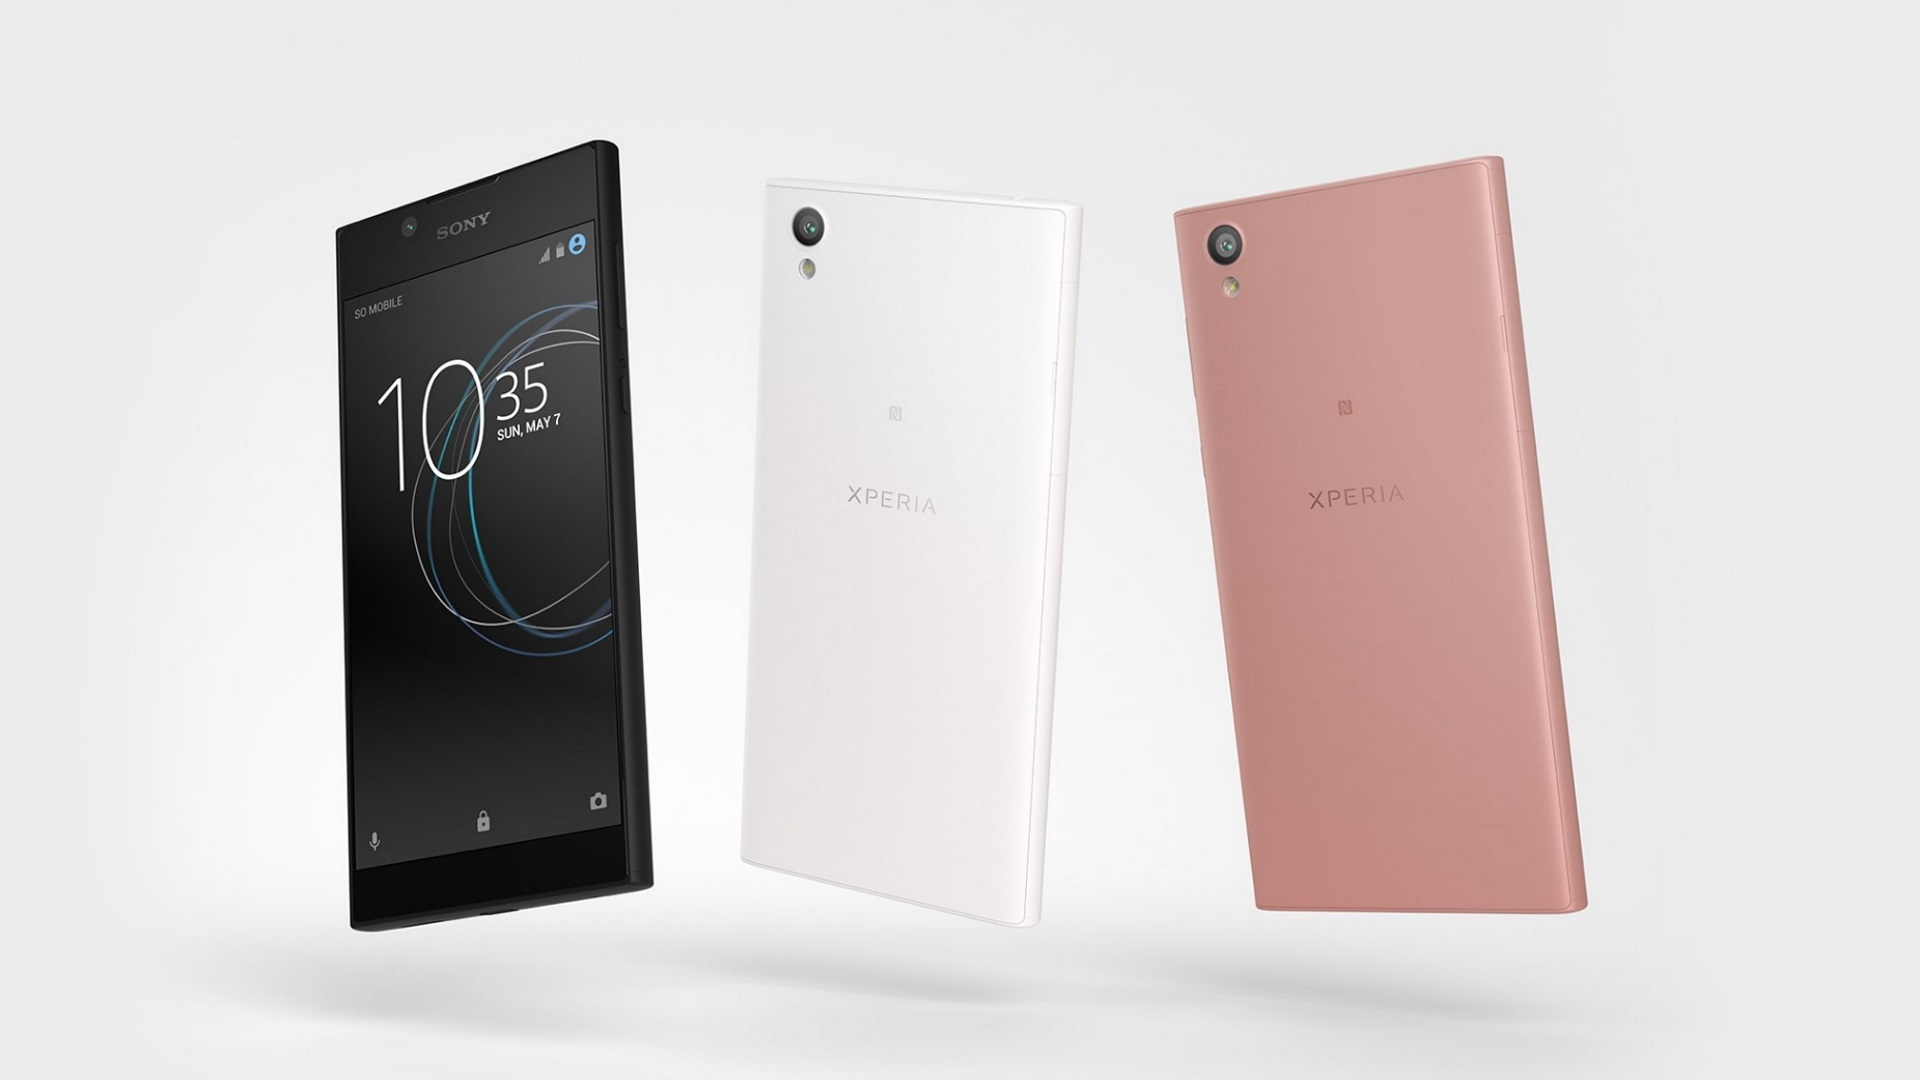 Sony Mobile、Android NやUSB Type-Cコネクタを搭載するエントリースペックスマートフォン「Xperia L1」を発表